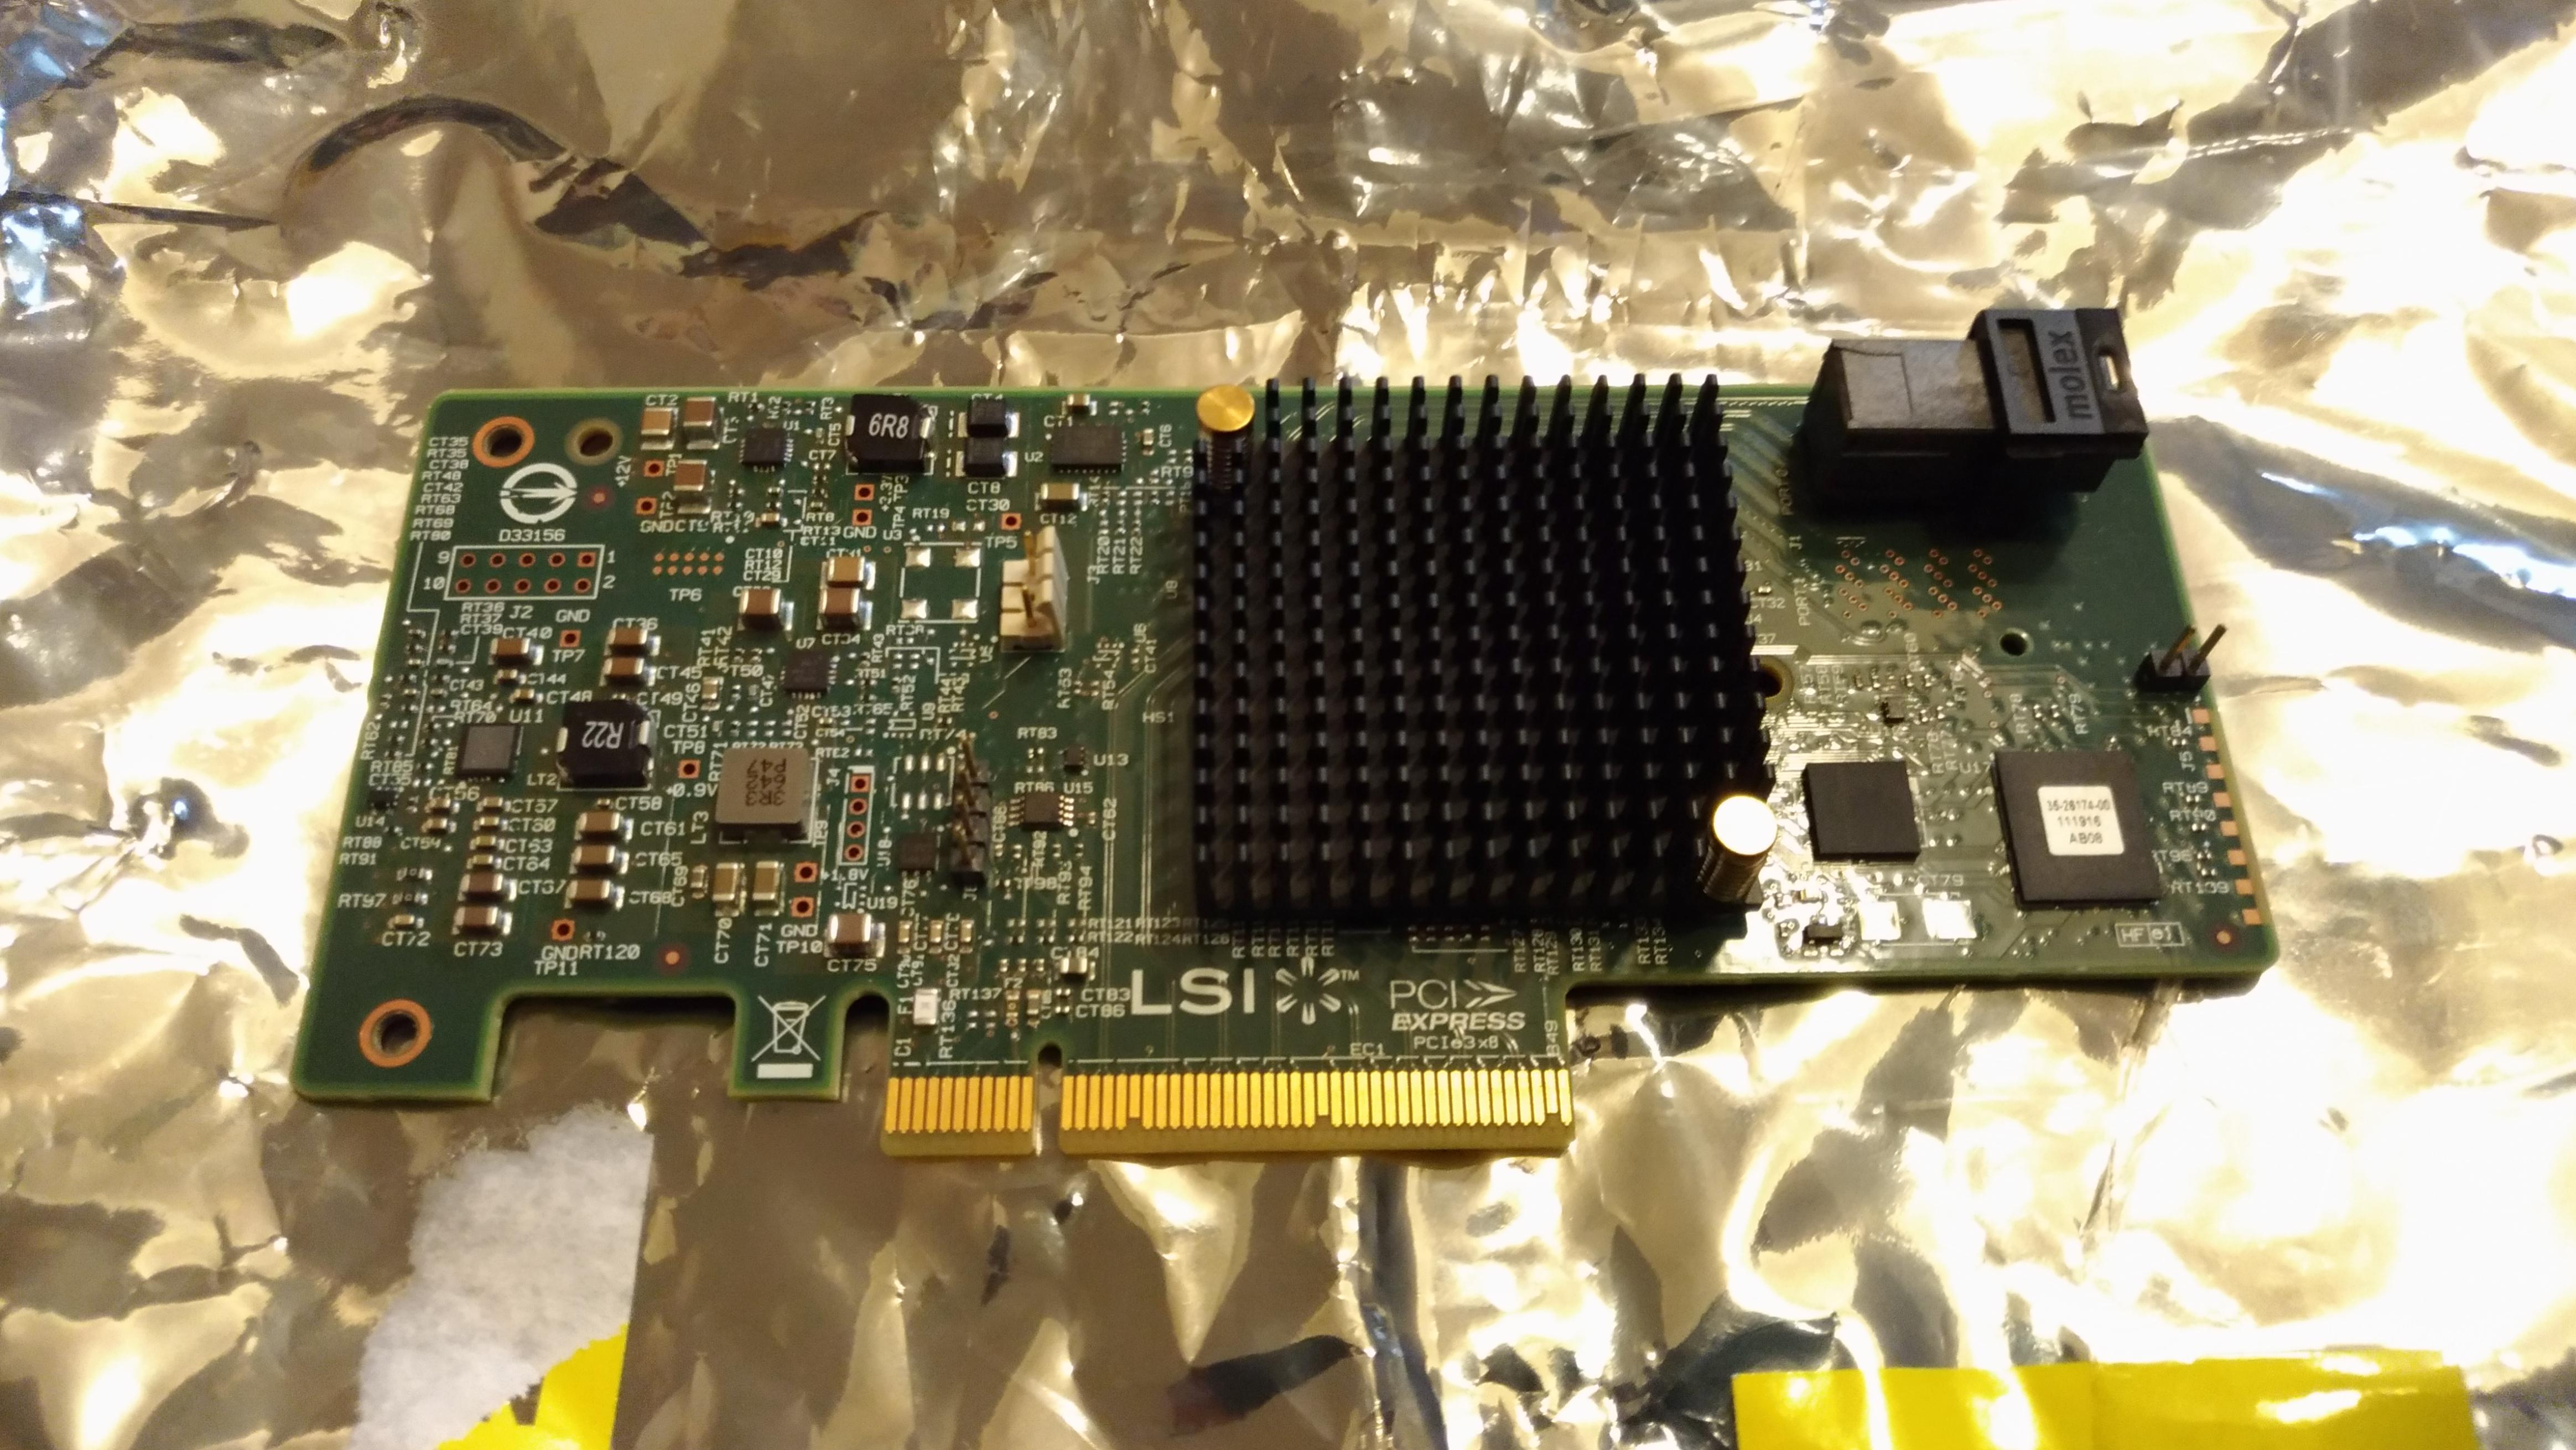 [賣][台北]LSI Logic MegaRAID SAS 9341-4i 4Port SATA/SAS 12Gb/s PCI Express 3.0 含檔板 - XFastest - LSI9341-4i.jpg